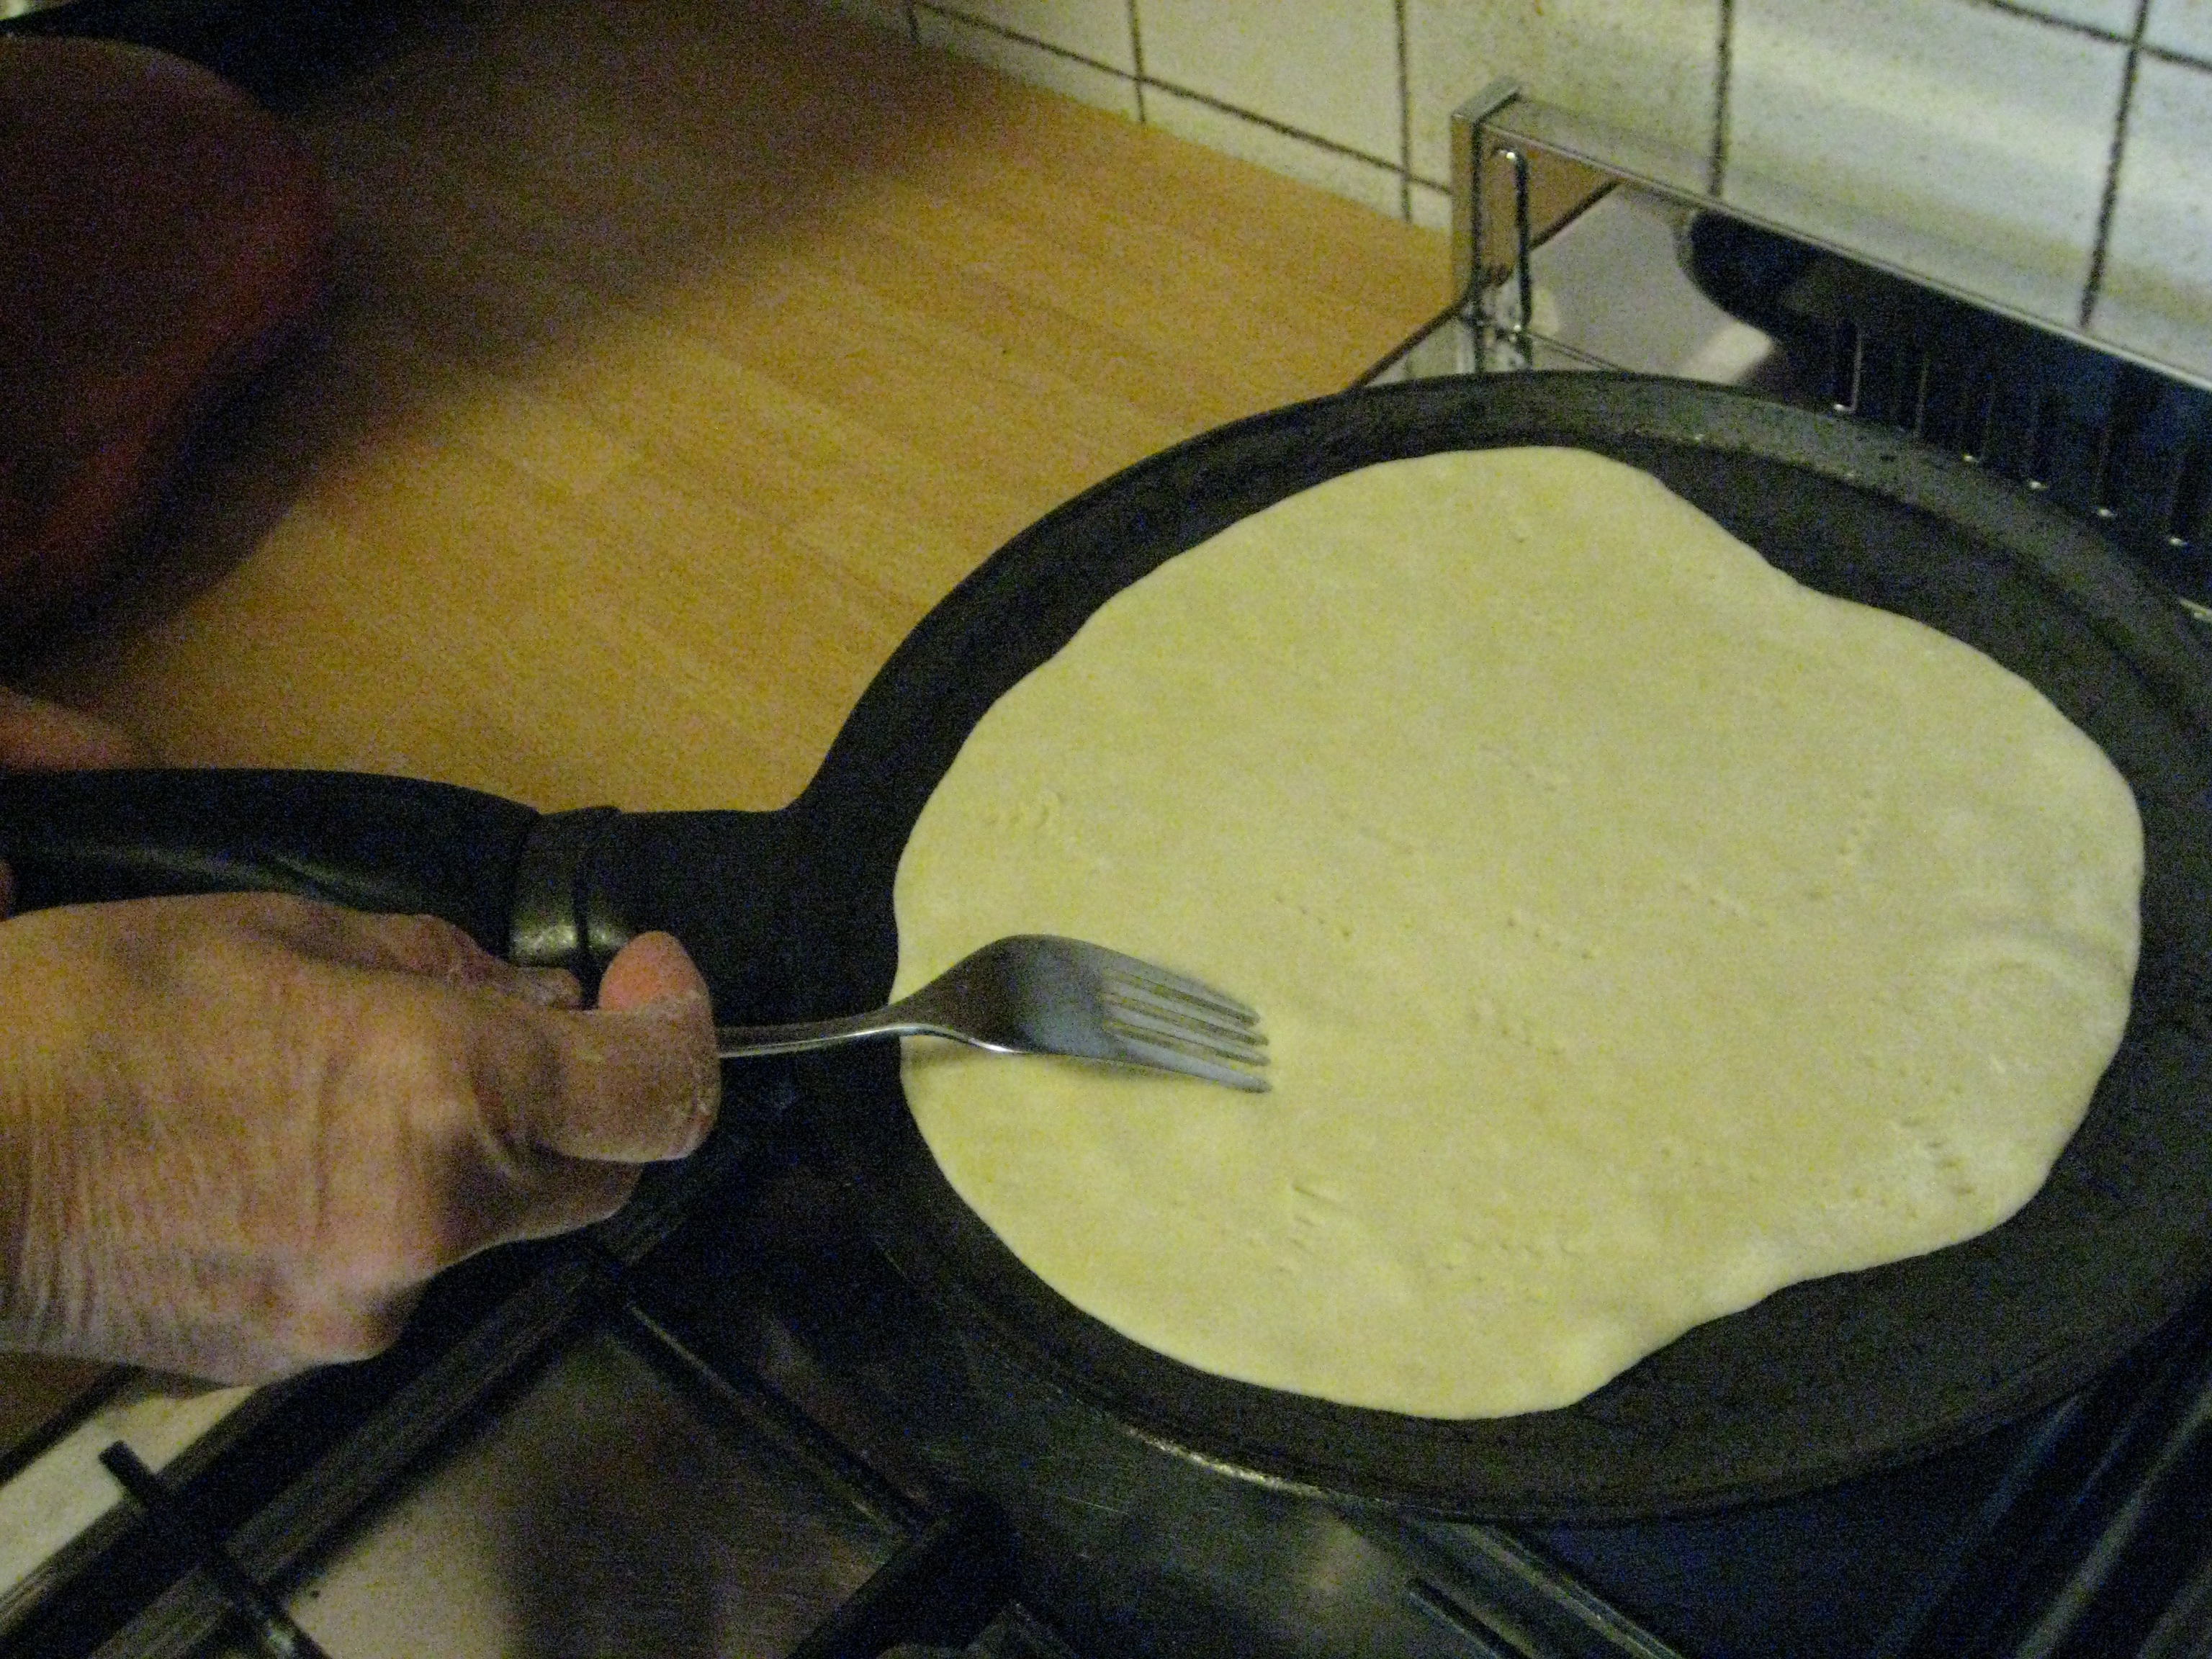 lay the piadina on a hot hot-pan and move continuously, piercing the ...